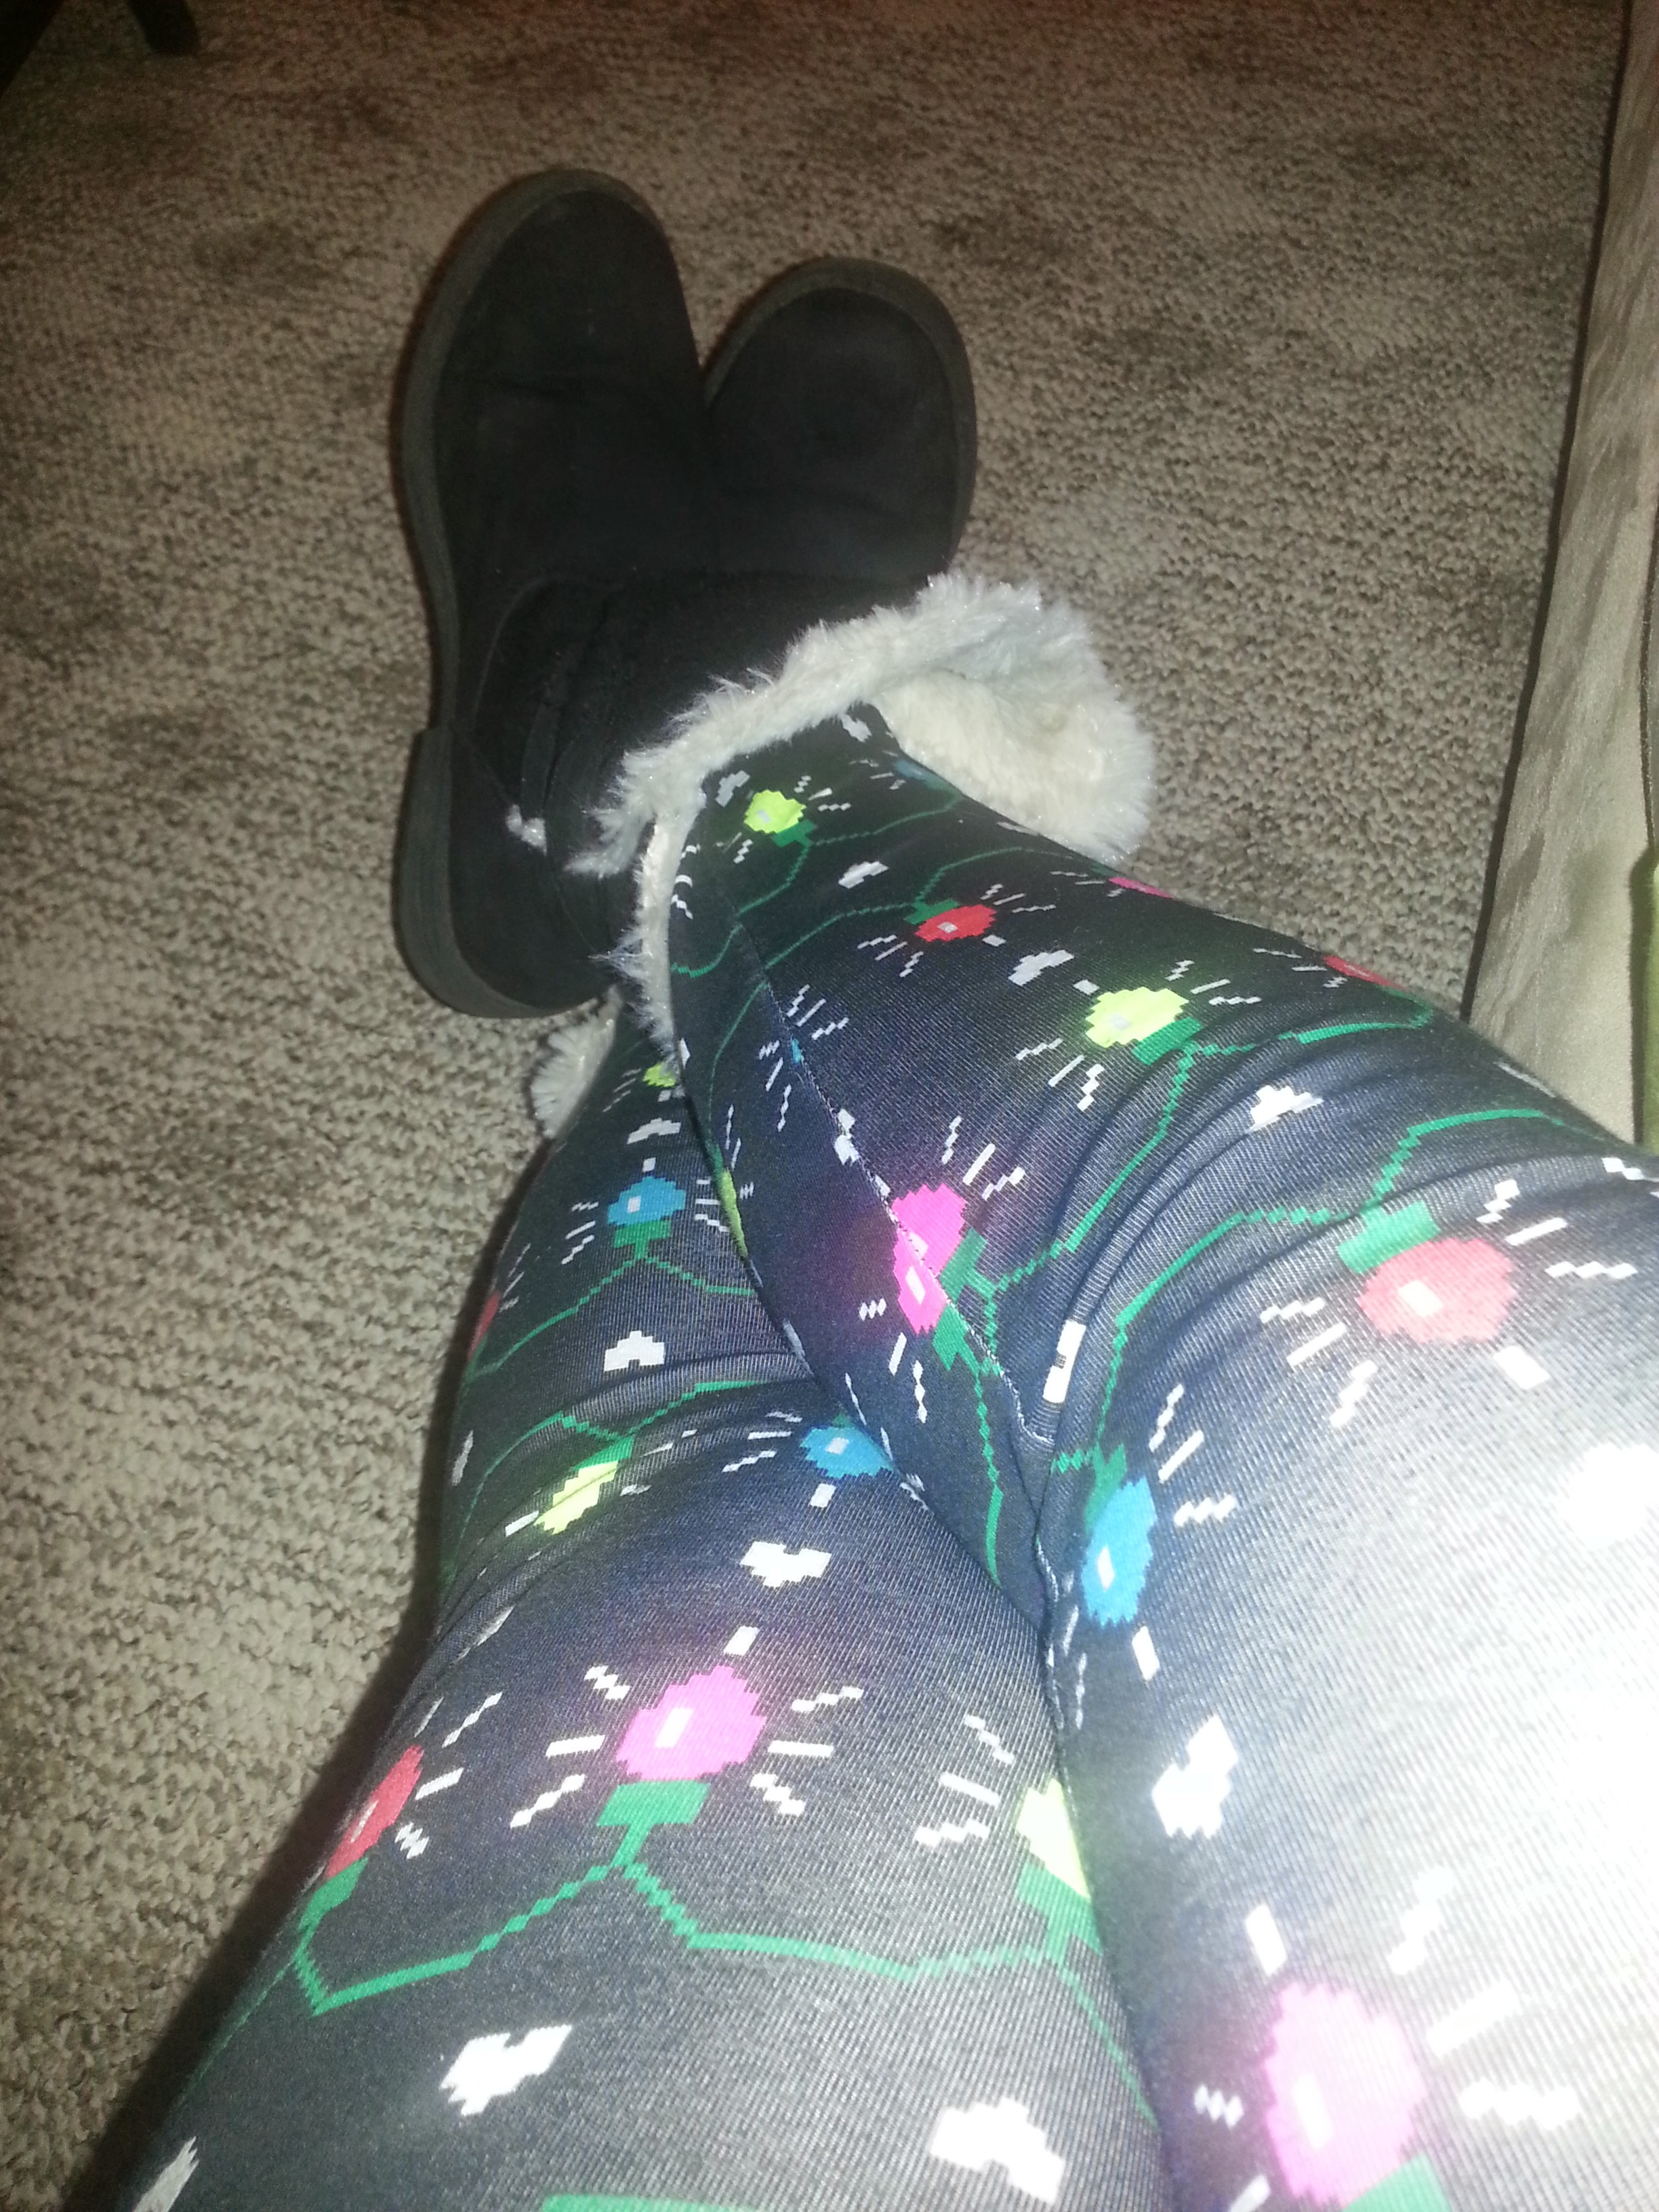 My holiday pants to look at Christmas lights.